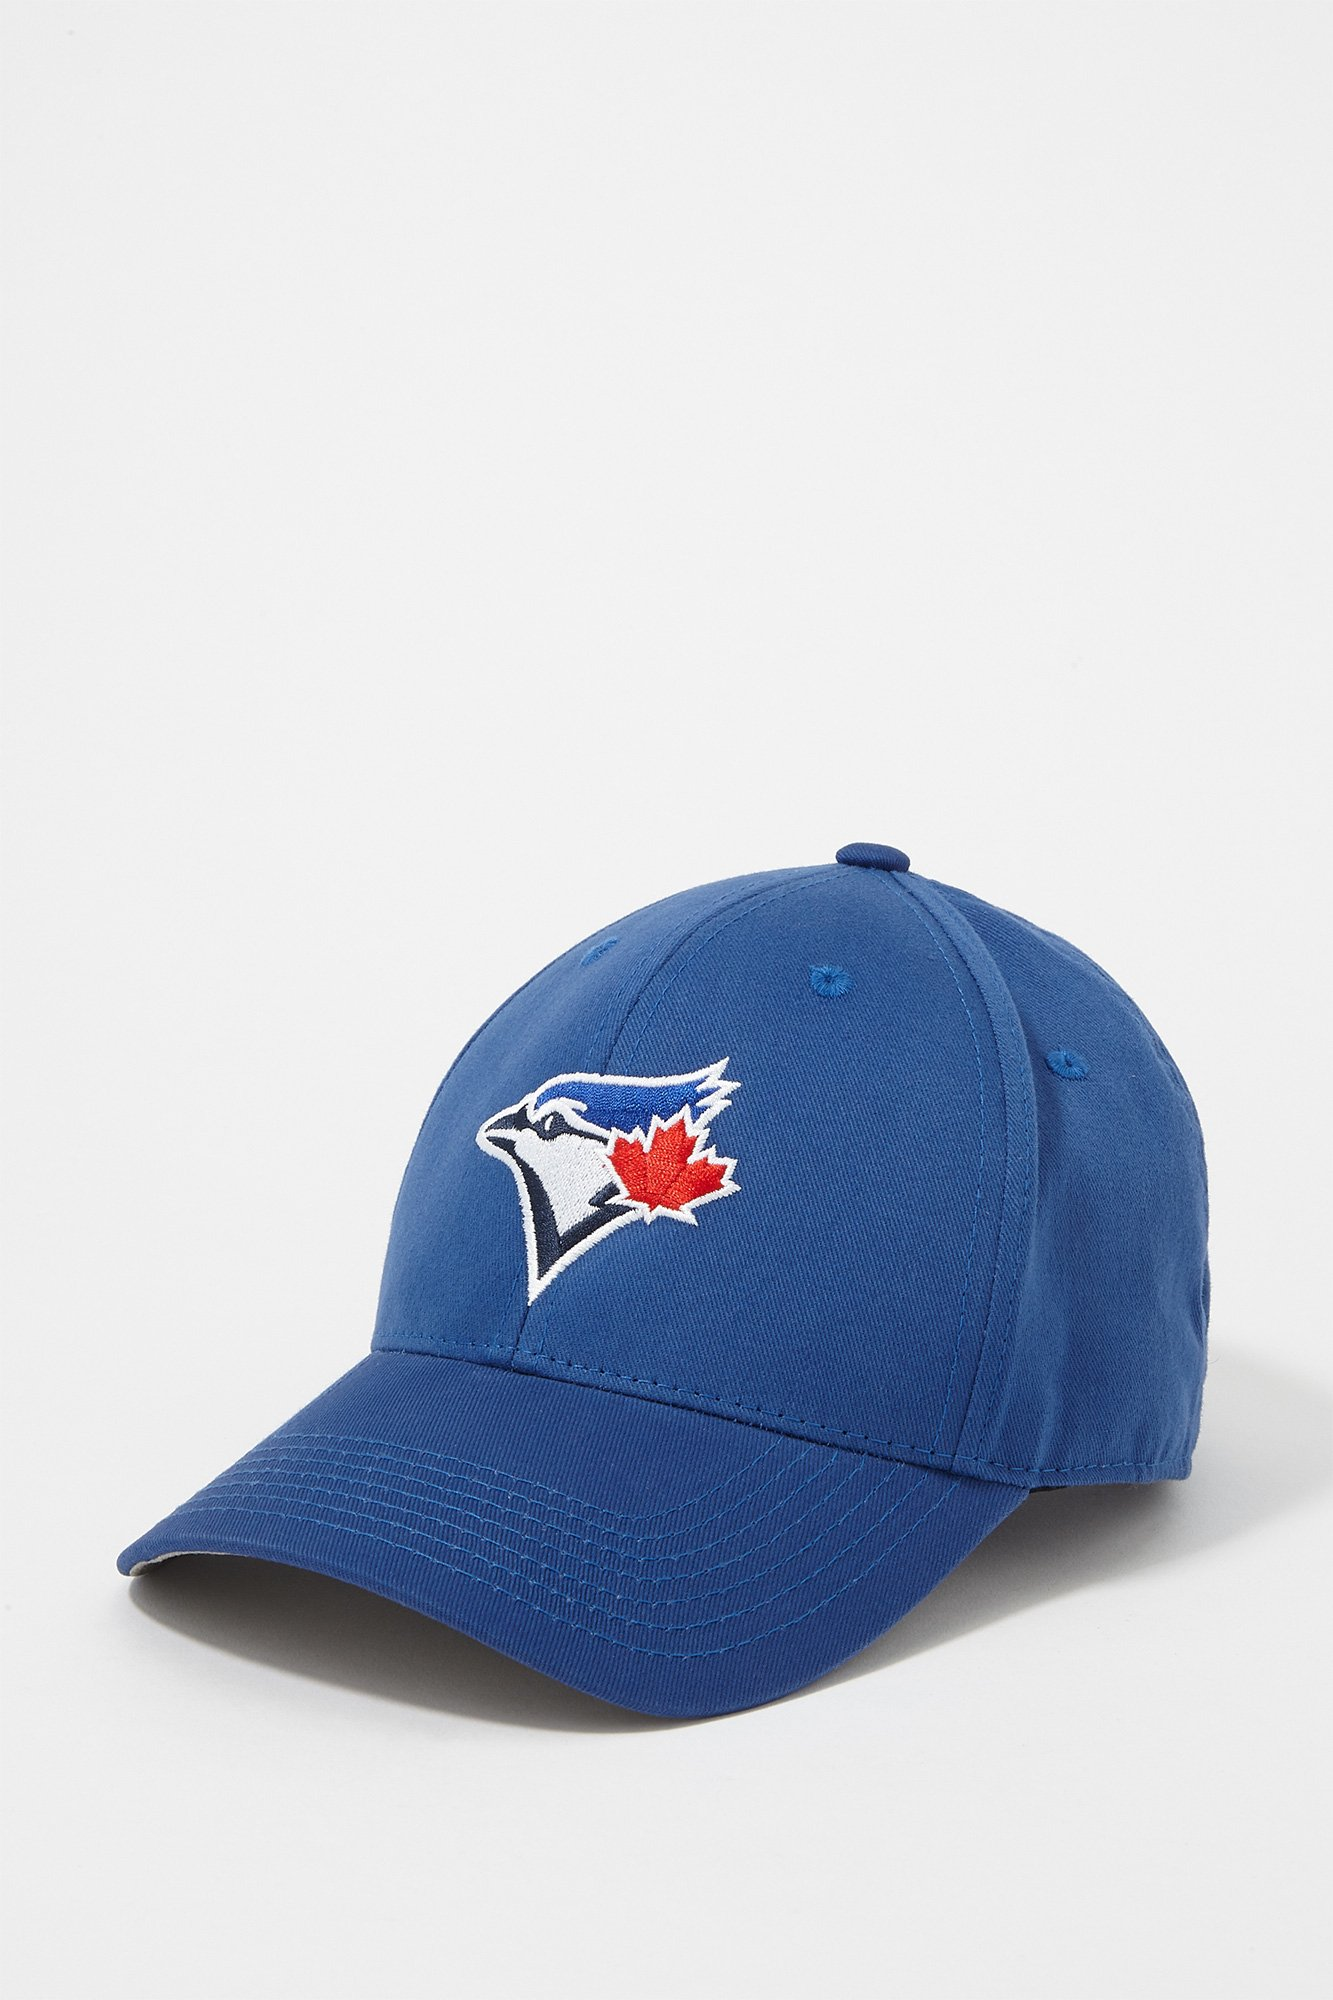 abc879cb70b4 Urban Kids Youth Boy s Boys Official Blue Jays Baseball Hat